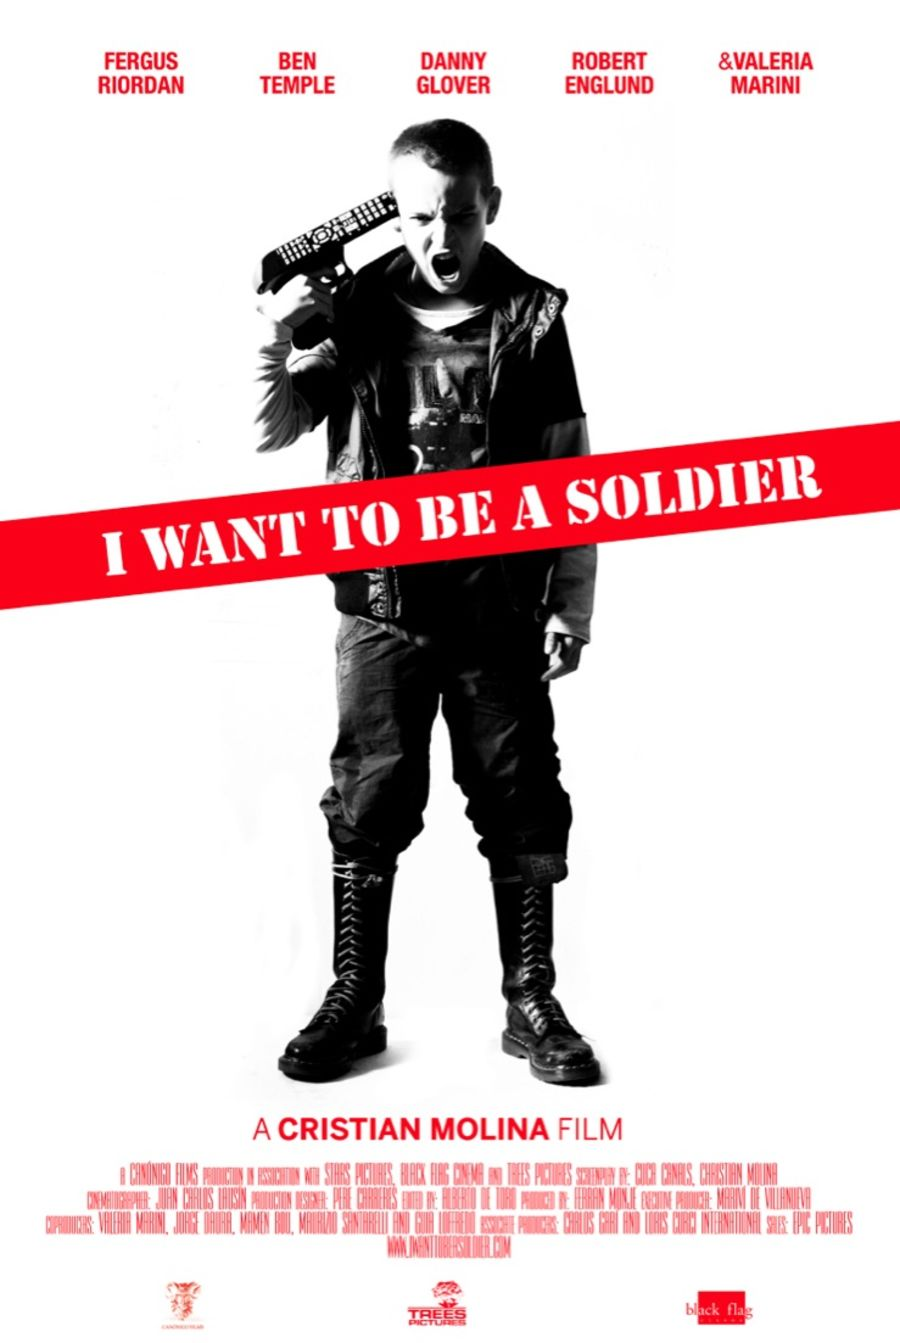 I want to be a soldier (Print) by Lo Siento Studio, Barcelona